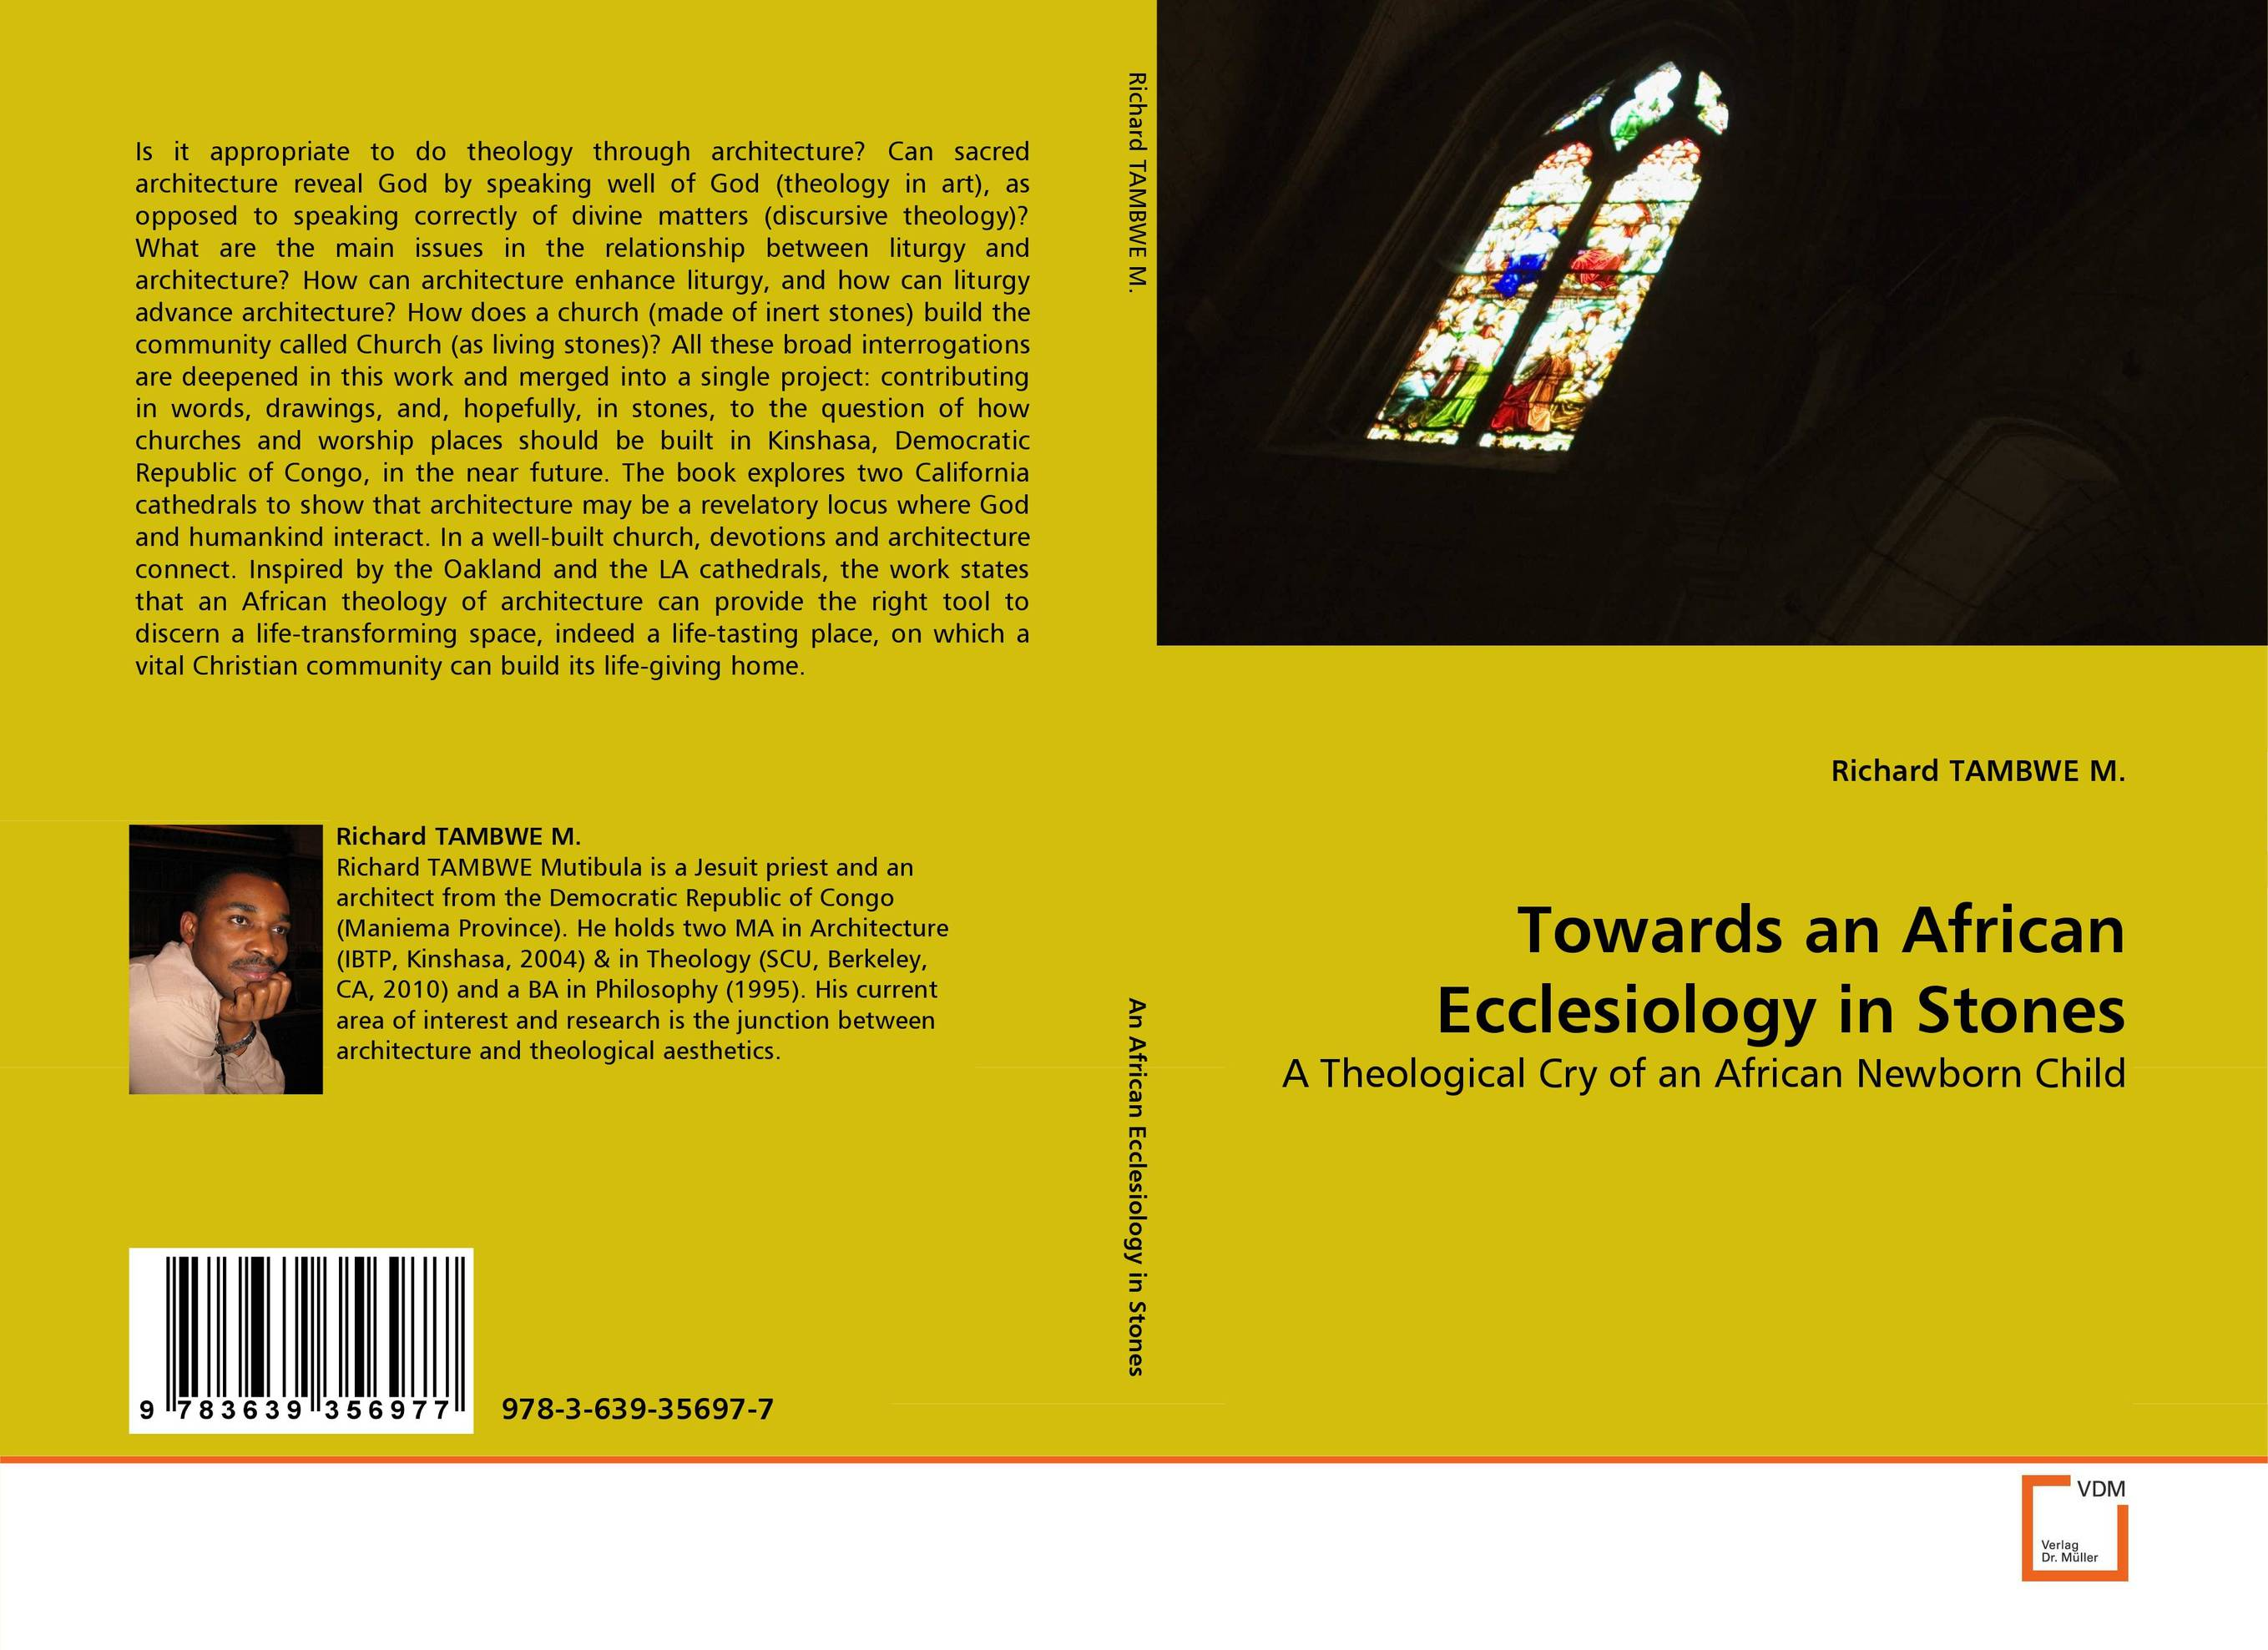 Towards an African Ecclesiology in Stones sola scriptura benedict xvi s theology of the word of god